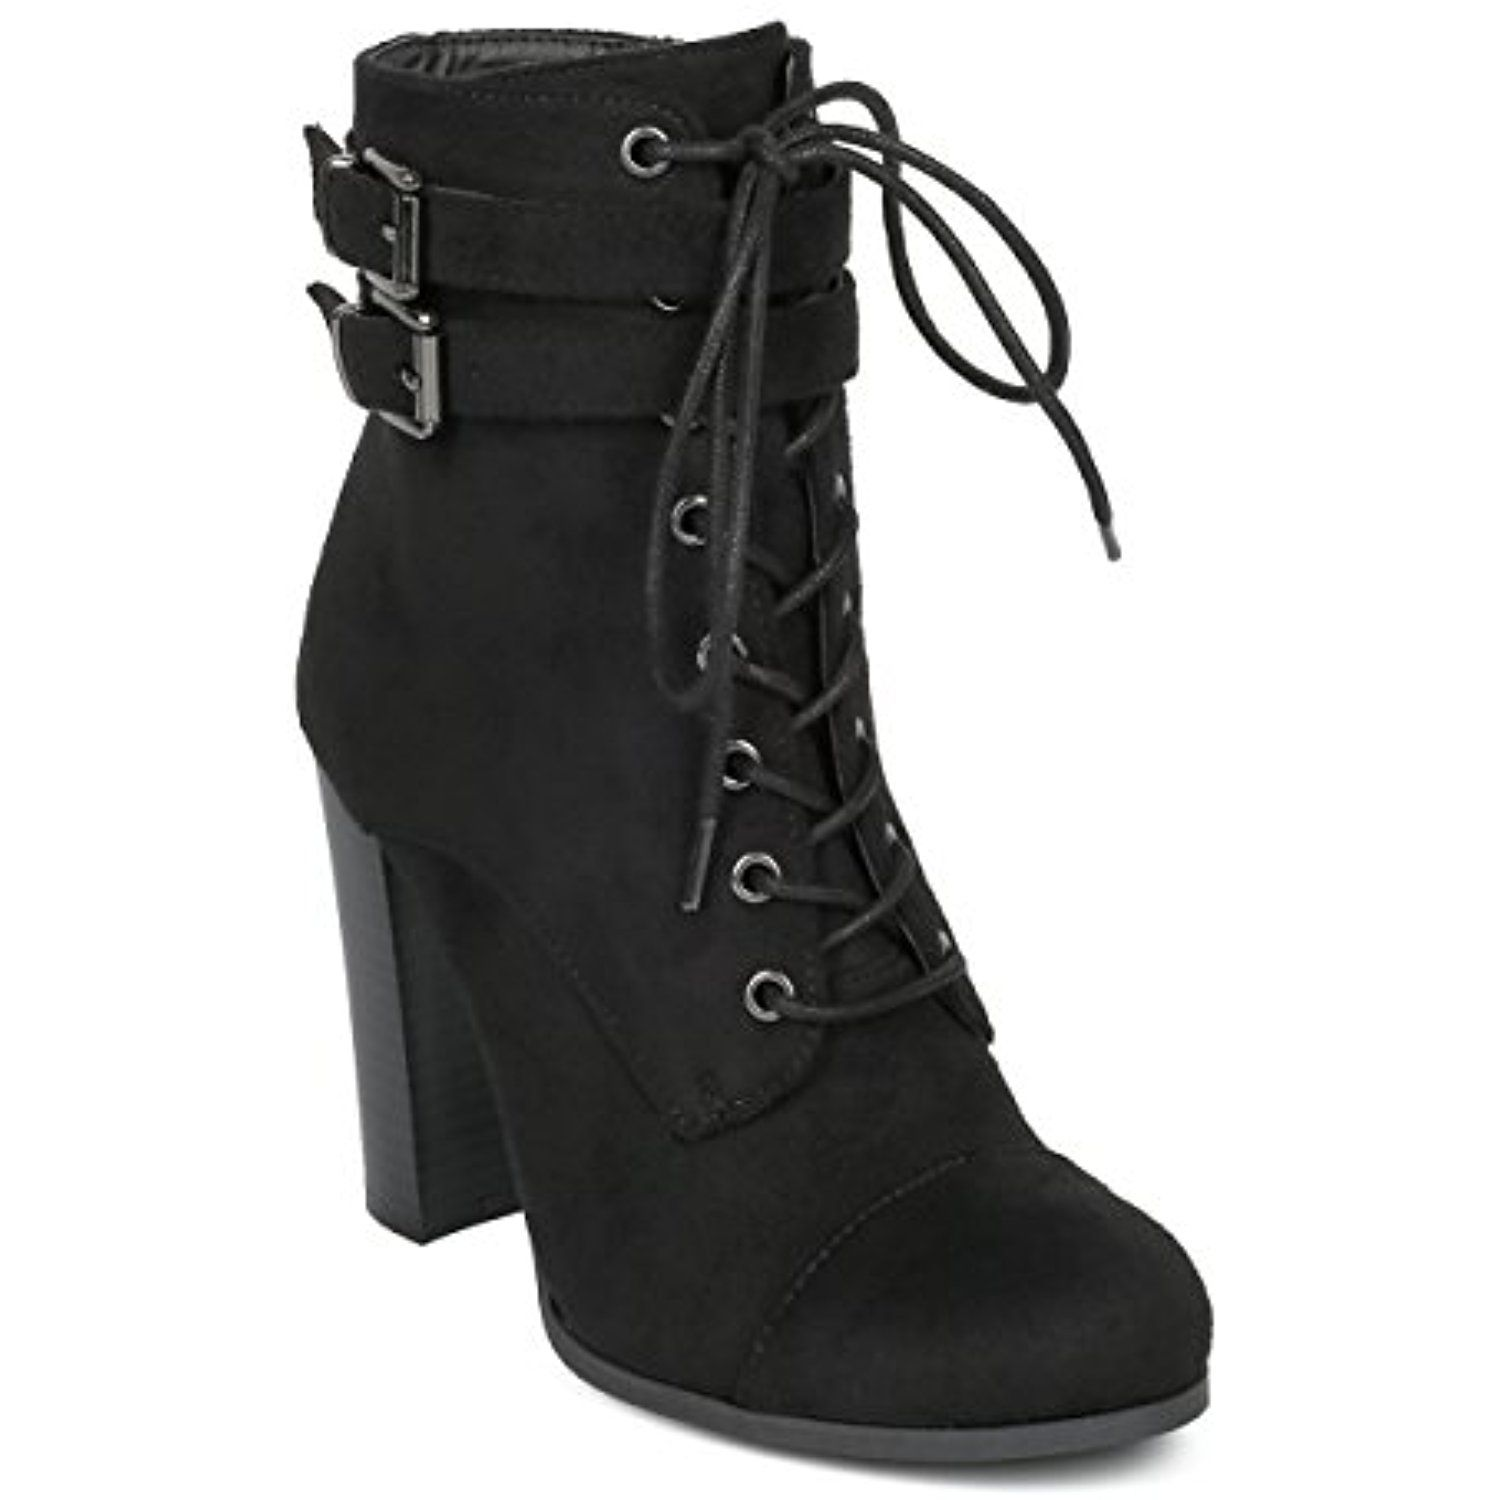 Women Block Heel Bootie - Lace Up Chunky Heel Ankle Boot - Dressy Versatile Combat Party - HE31 by Wild Diva Collection